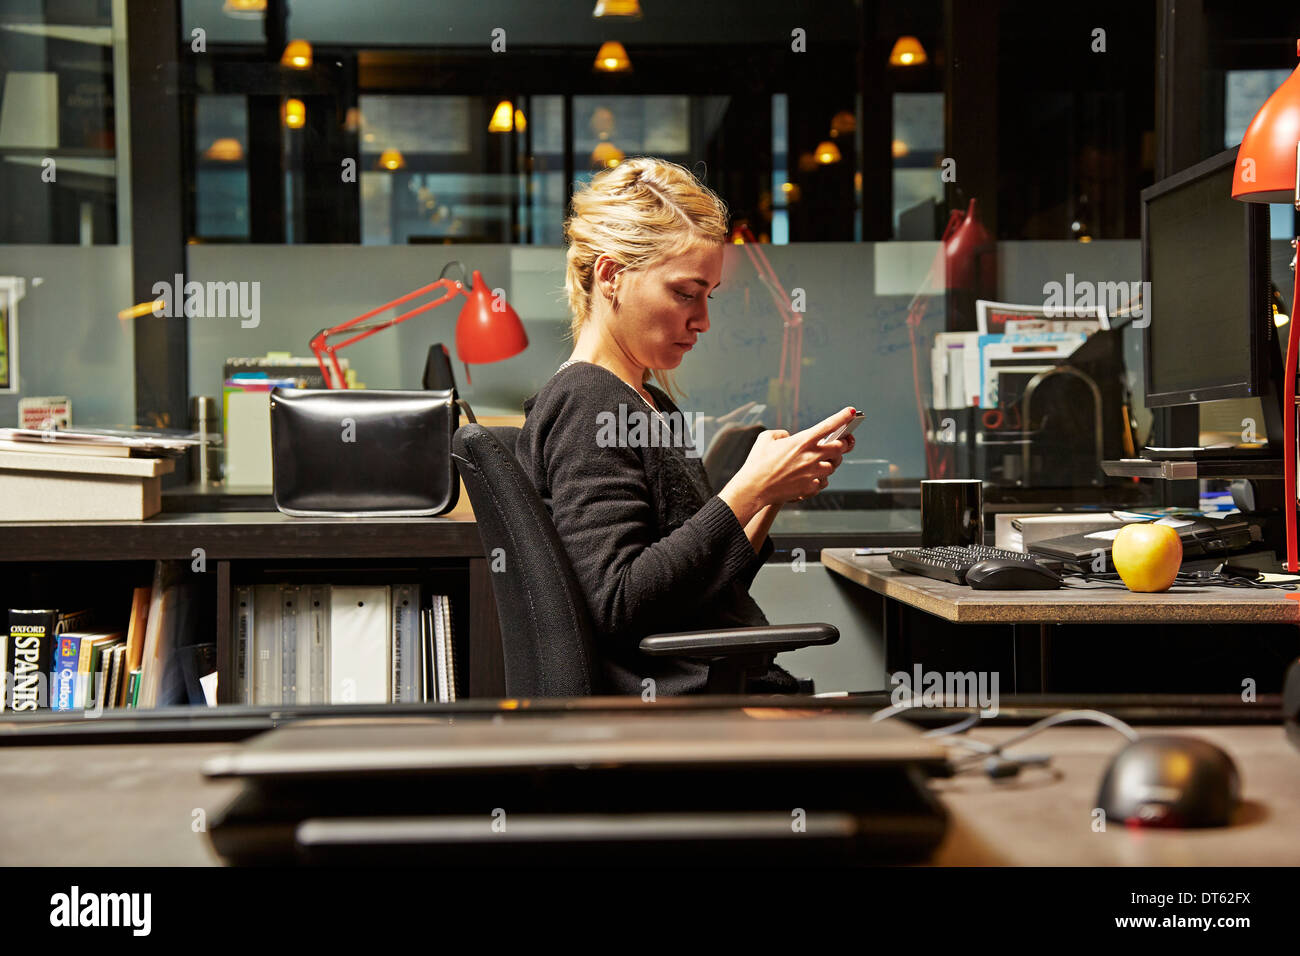 Female office worker at desk using cell phone - Stock Image